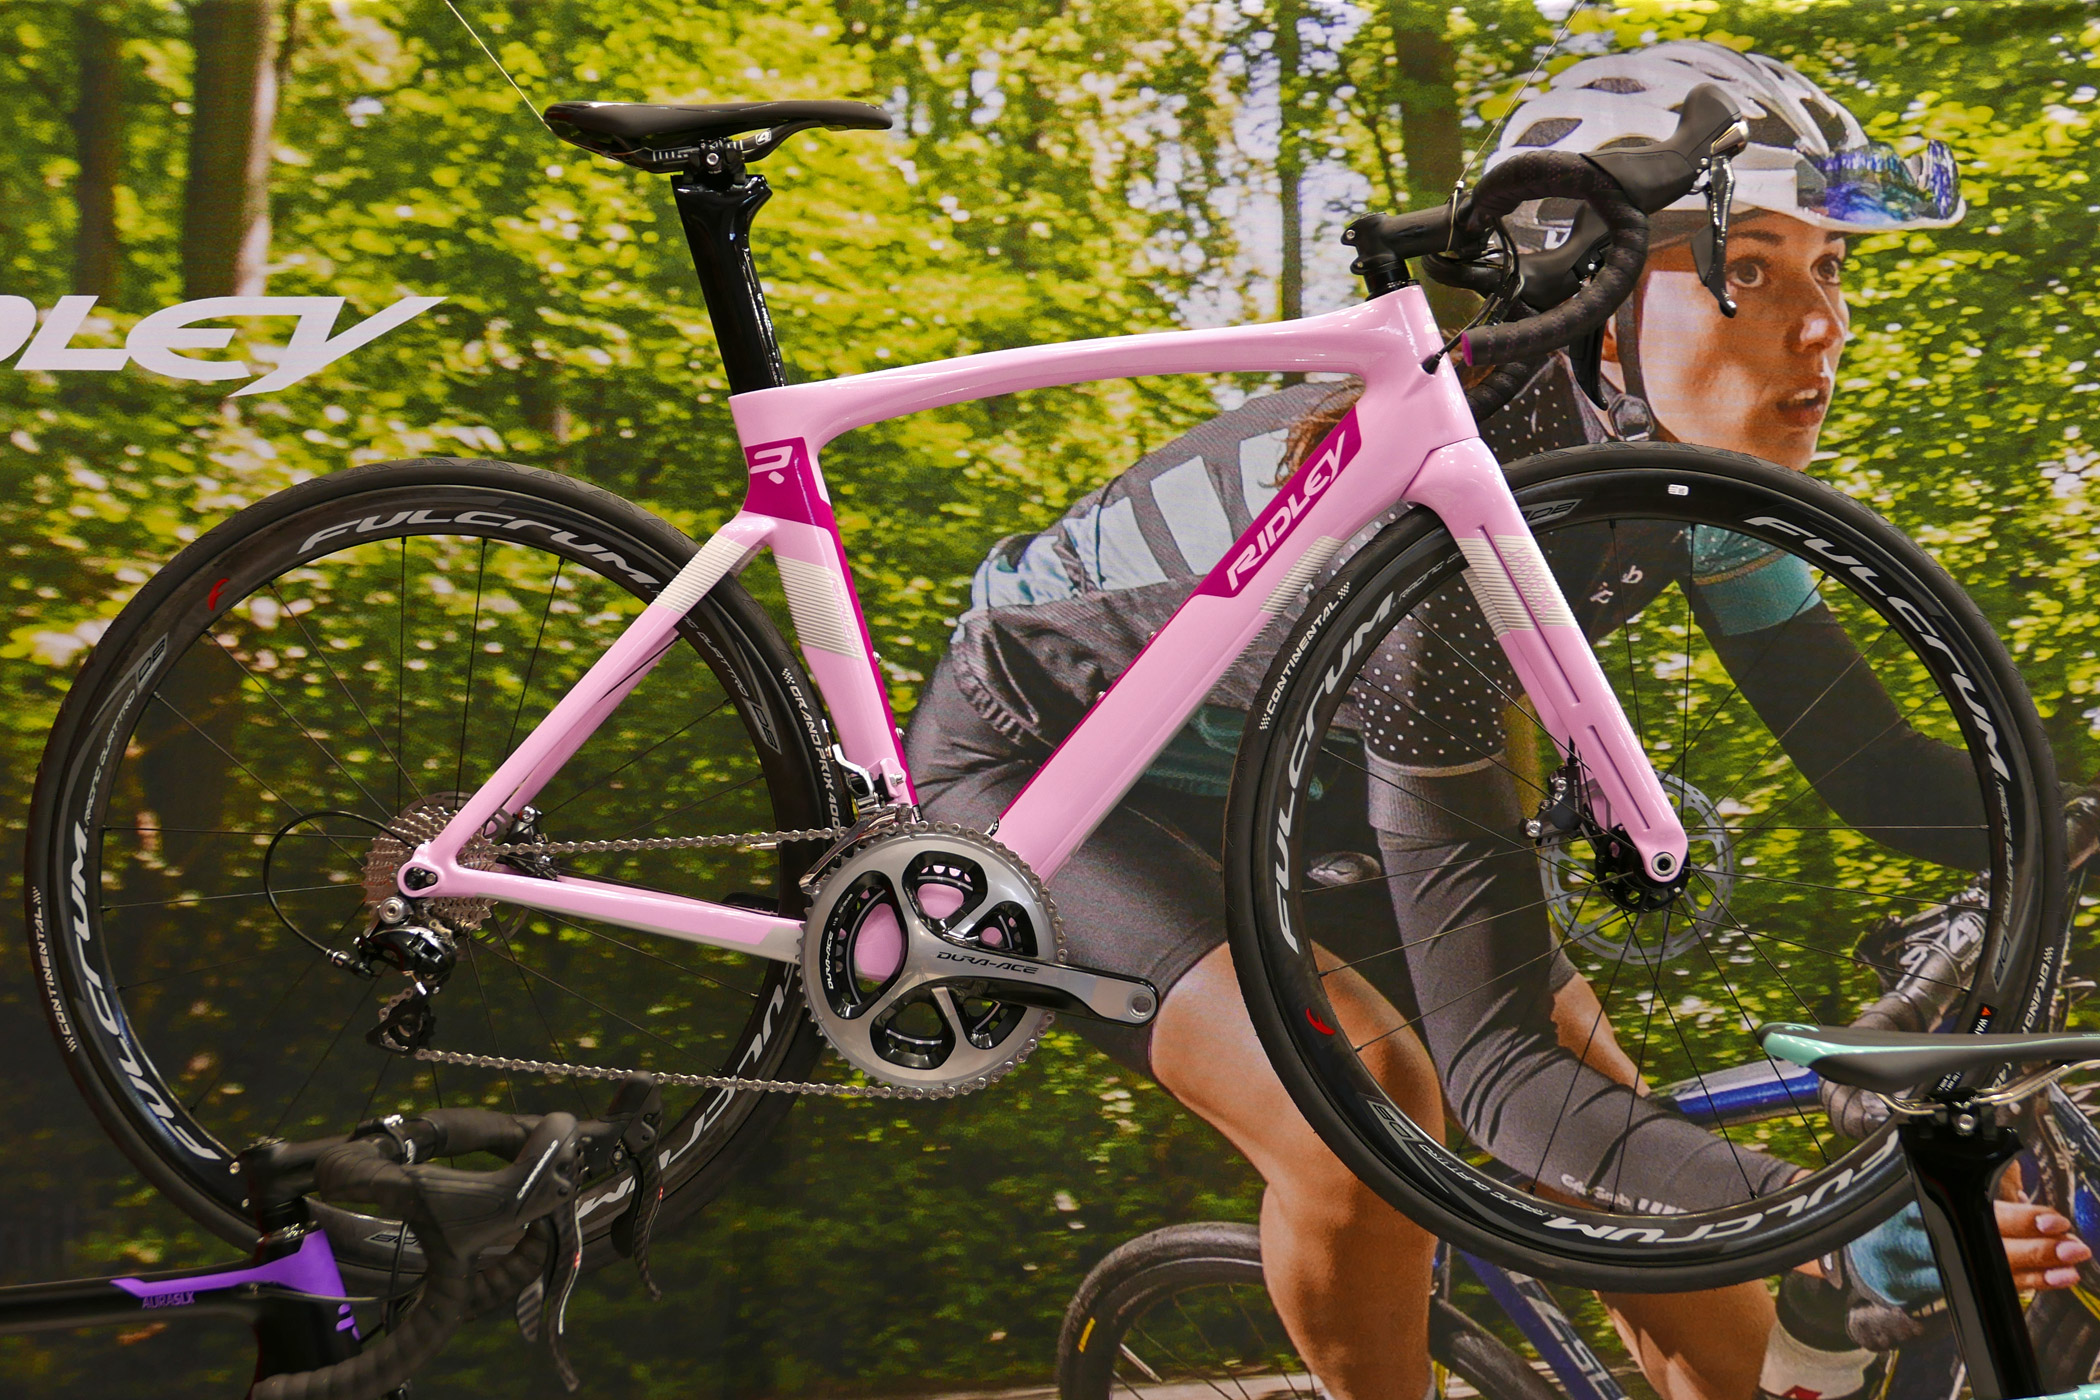 Eb16 Ridley Introduces New Premium Race Bike Range For Fast Women